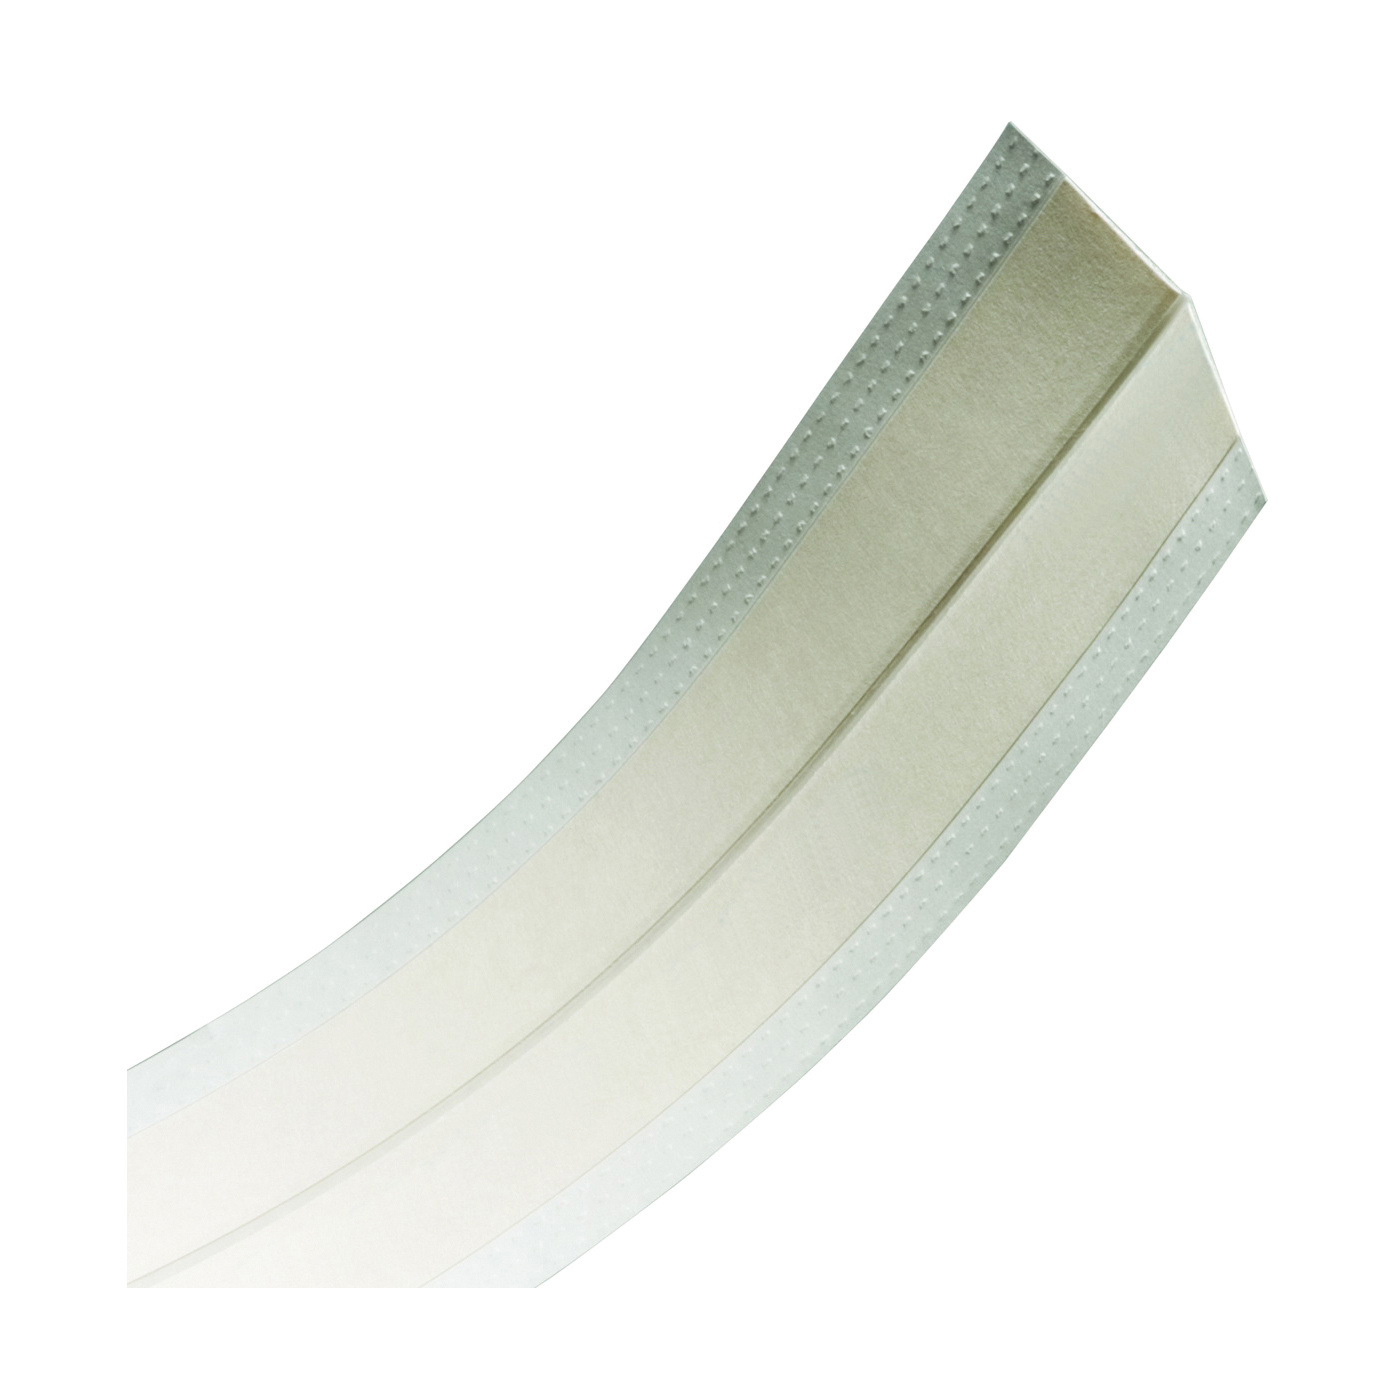 Picture of Grabber Construction 311692 Corner Tape, 100 ft L, 3-1/4 in W, Co-Polymer